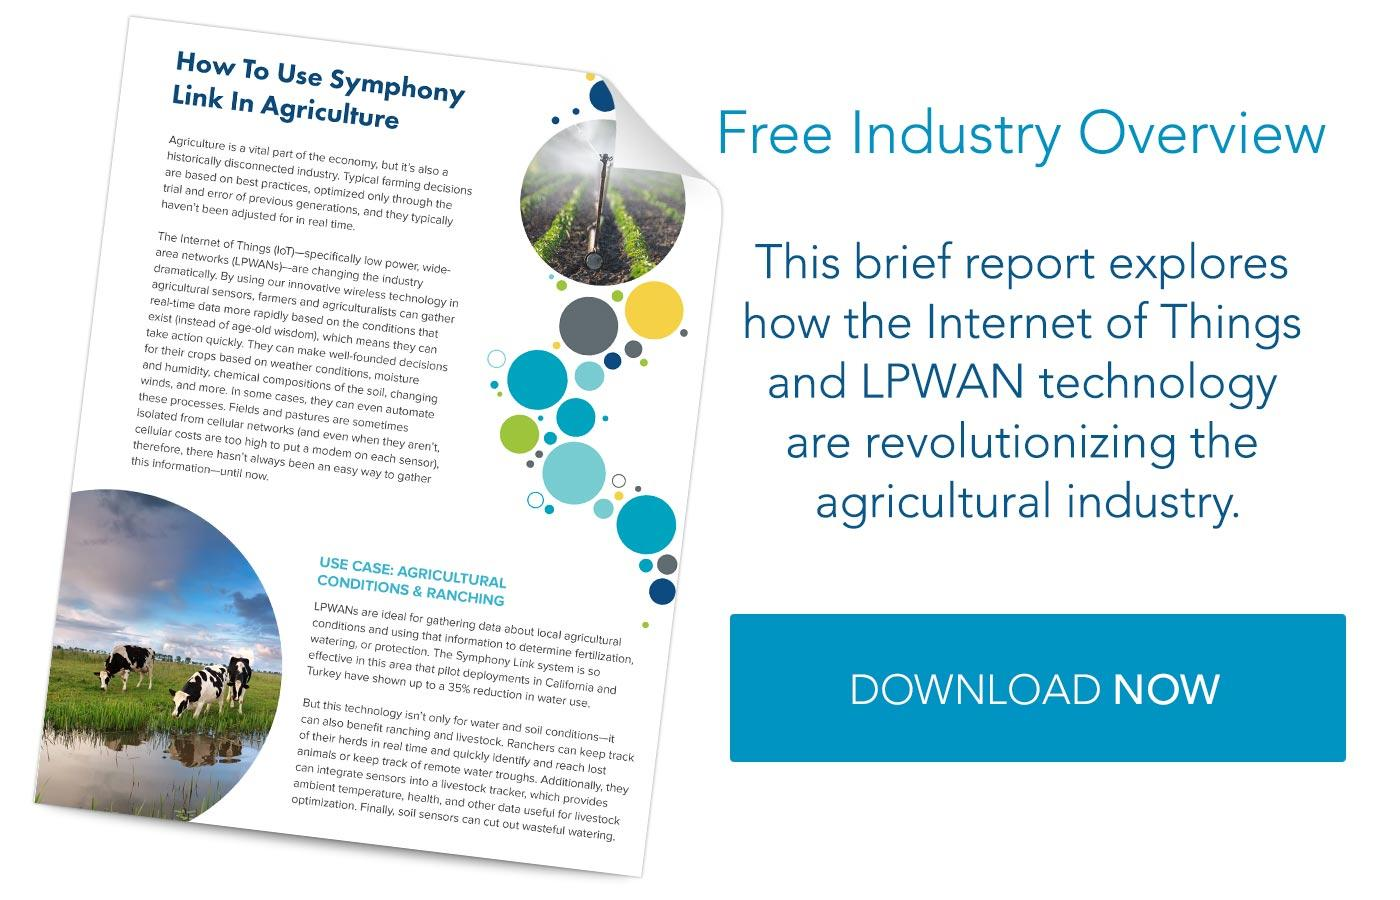 An In-Depth Look At IoT In Agriculture & Smart Farming Solutions